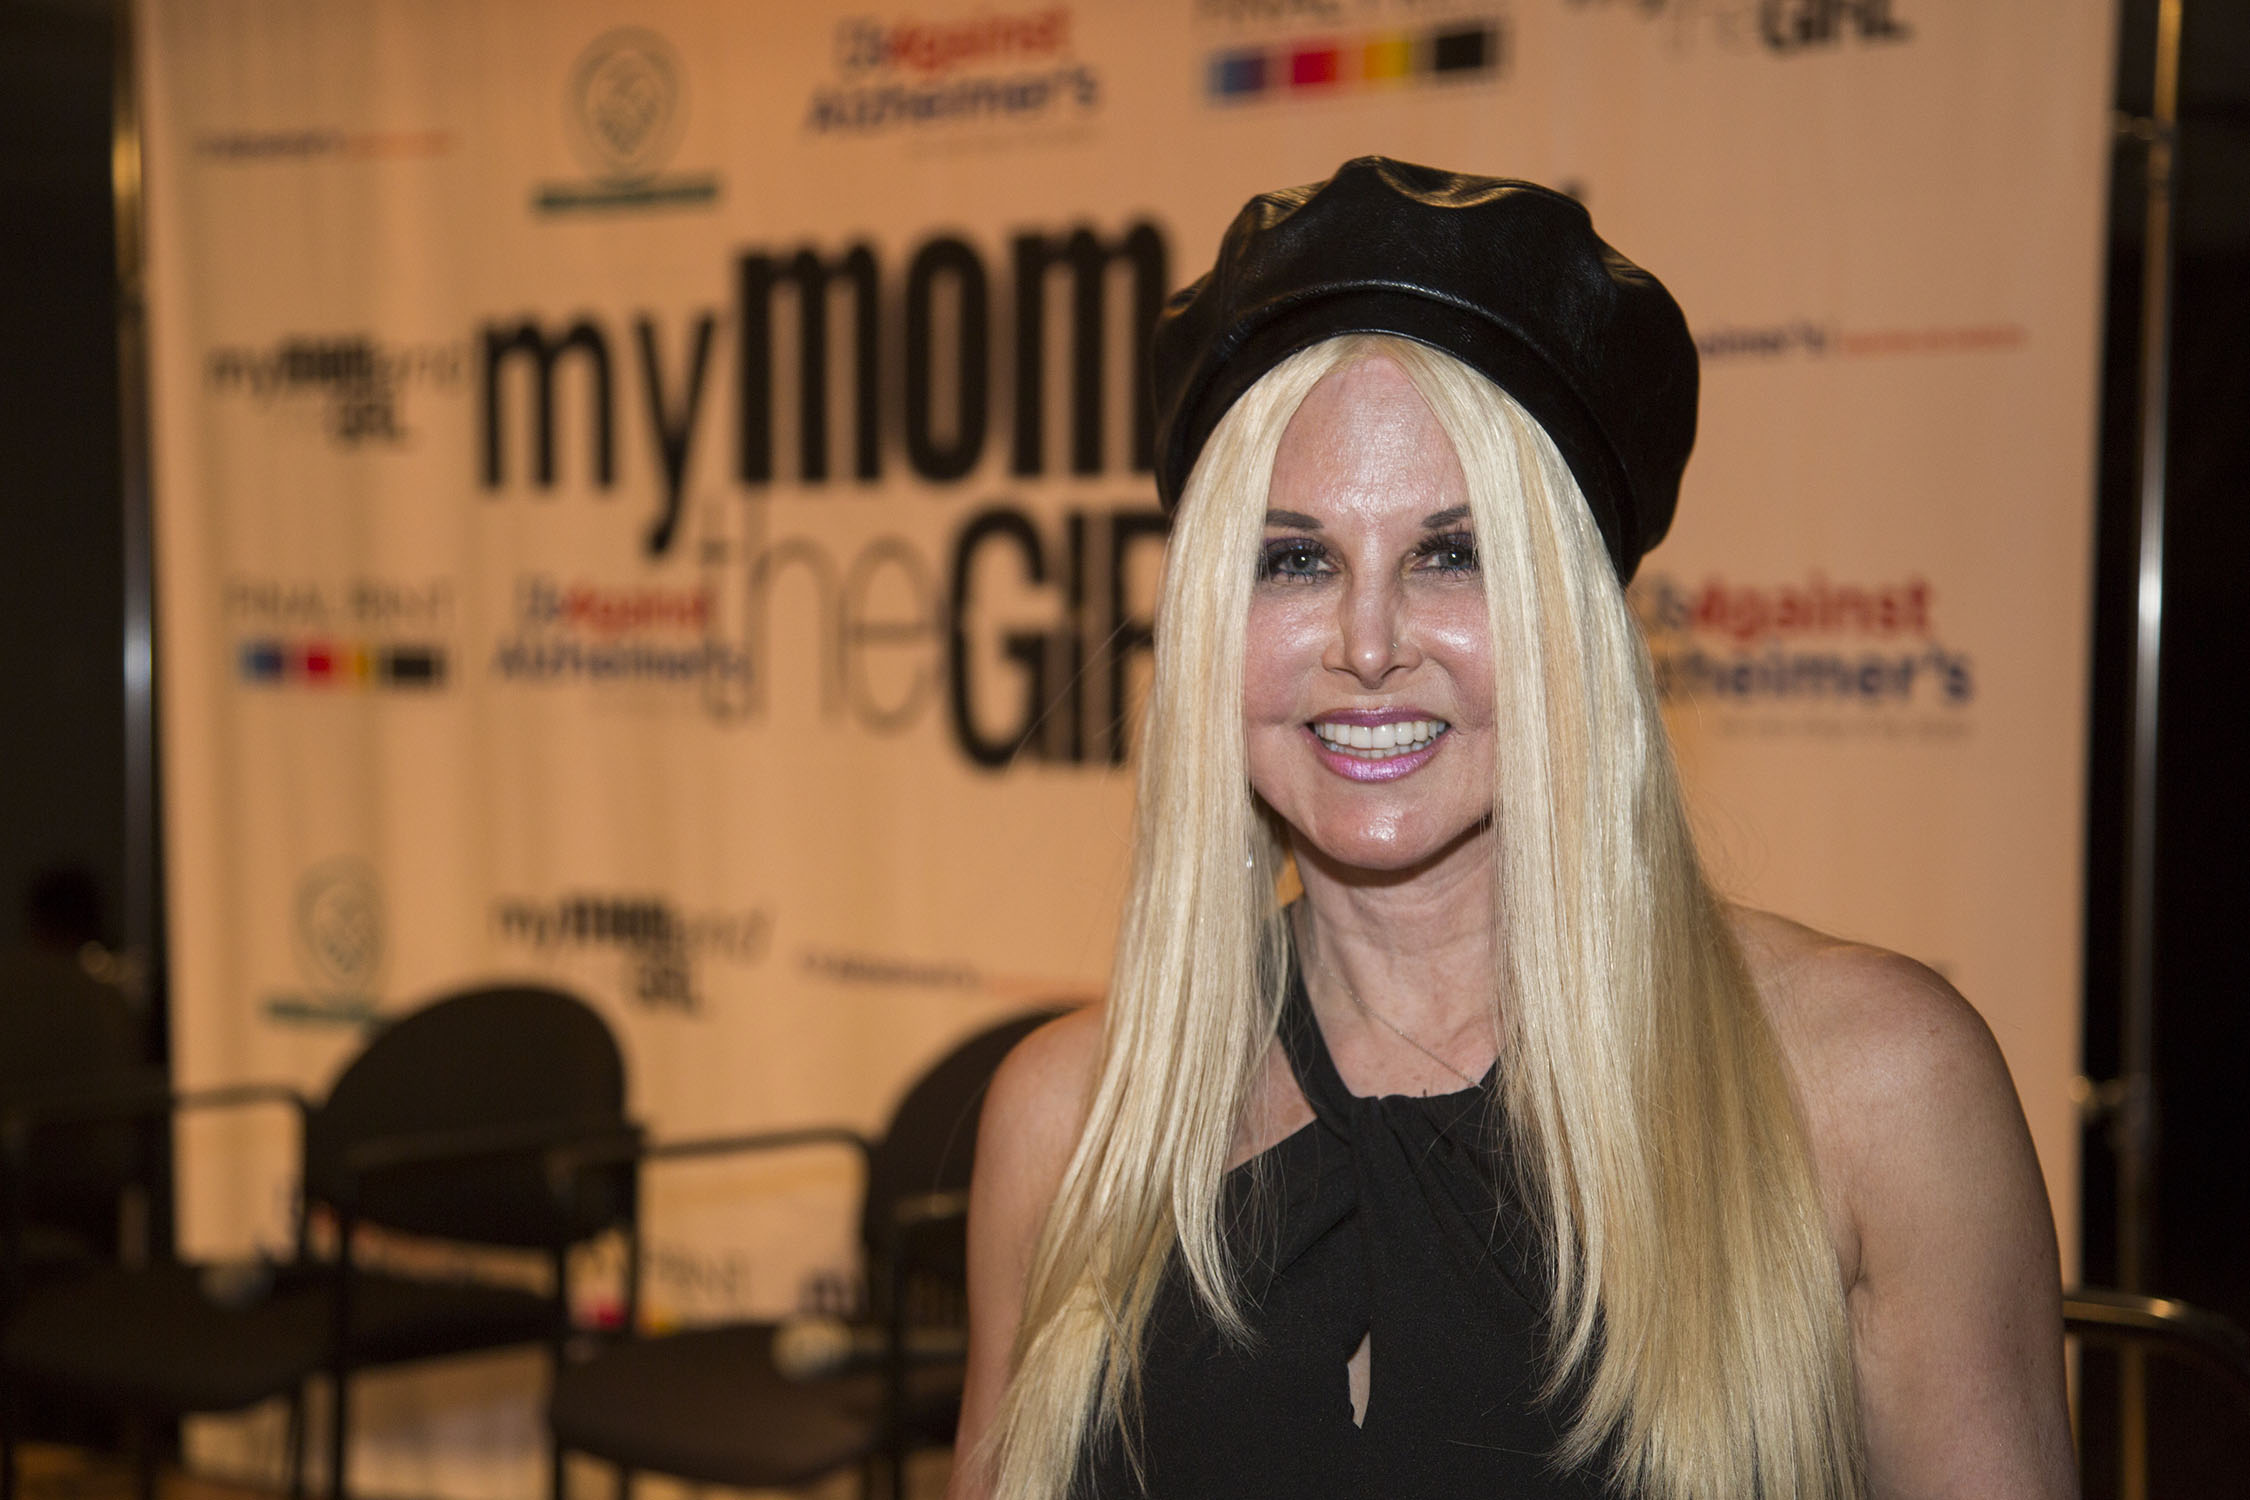 Producer, writer, director and star of My Mom and the Girl, Susie Singer Carter